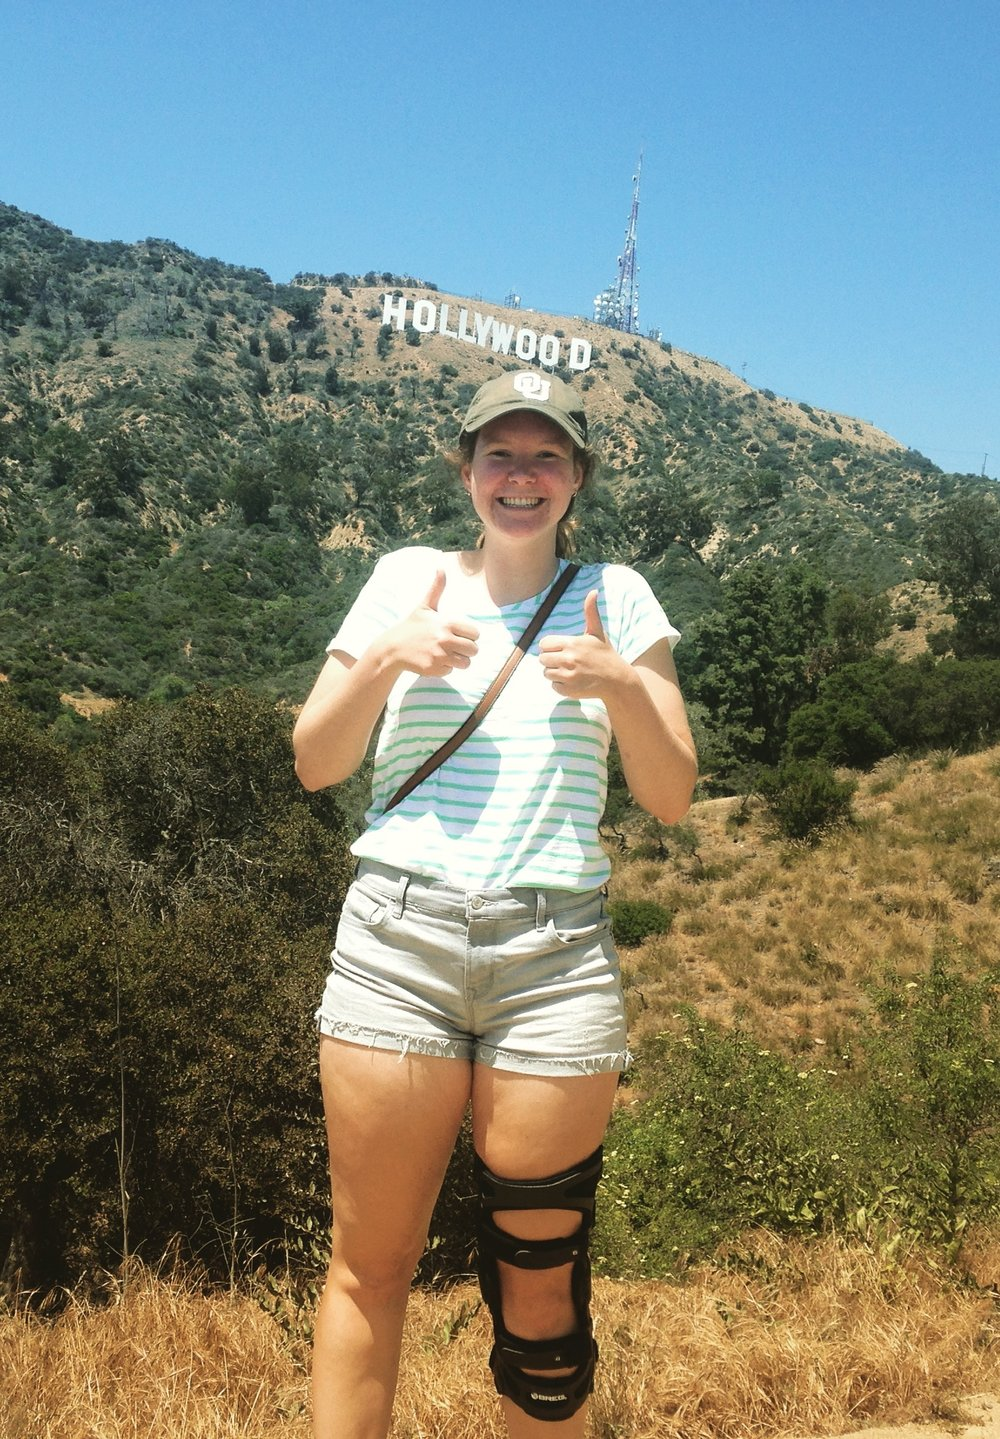 Savannah Heller, Senior HTC/BFA student, enjoying the life in sunny Los Angeles.